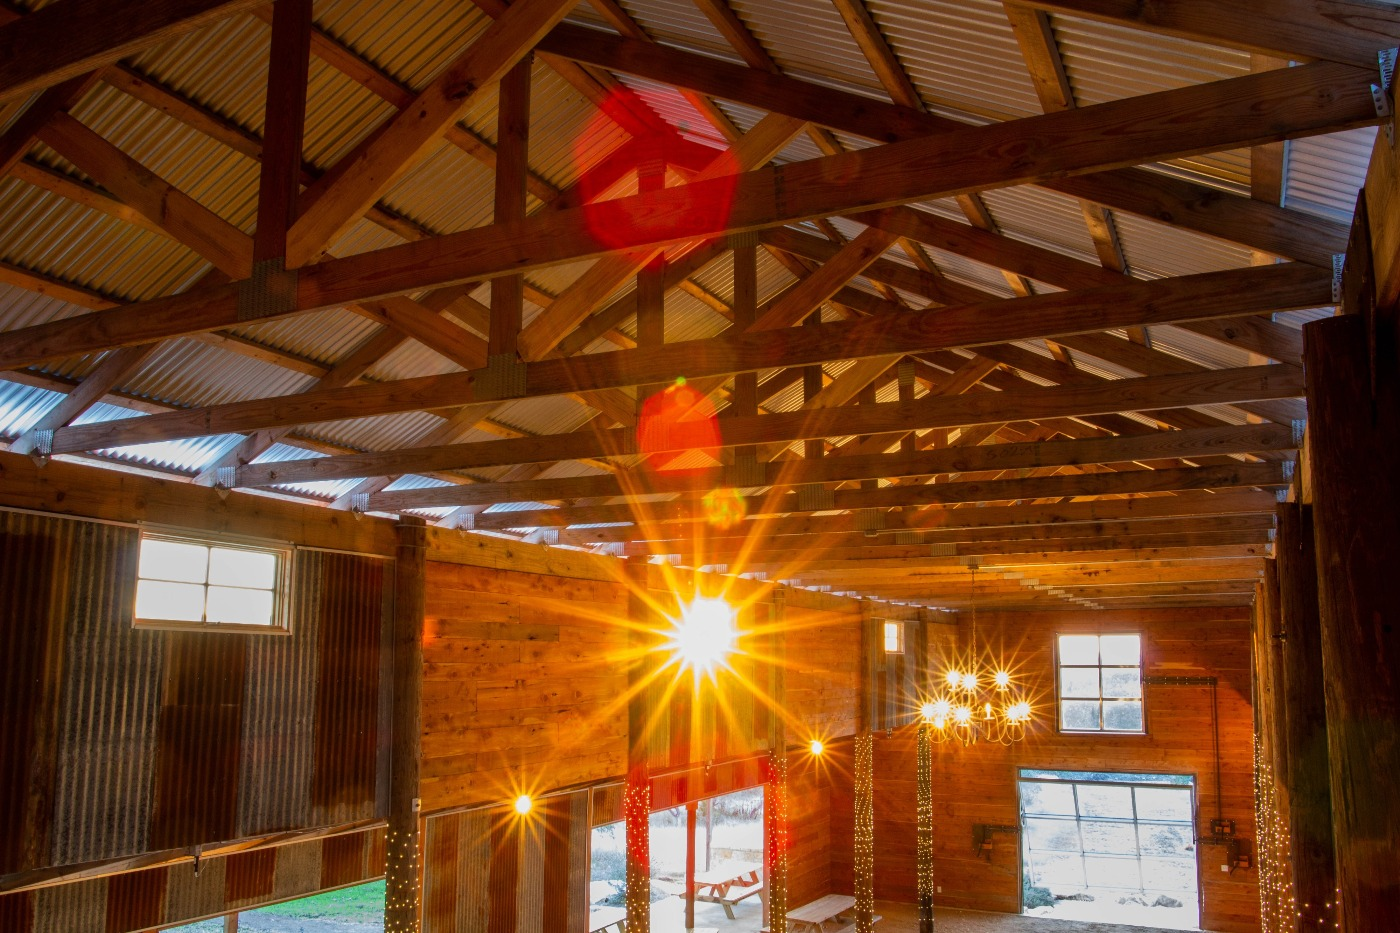 event center day2 j.jpg